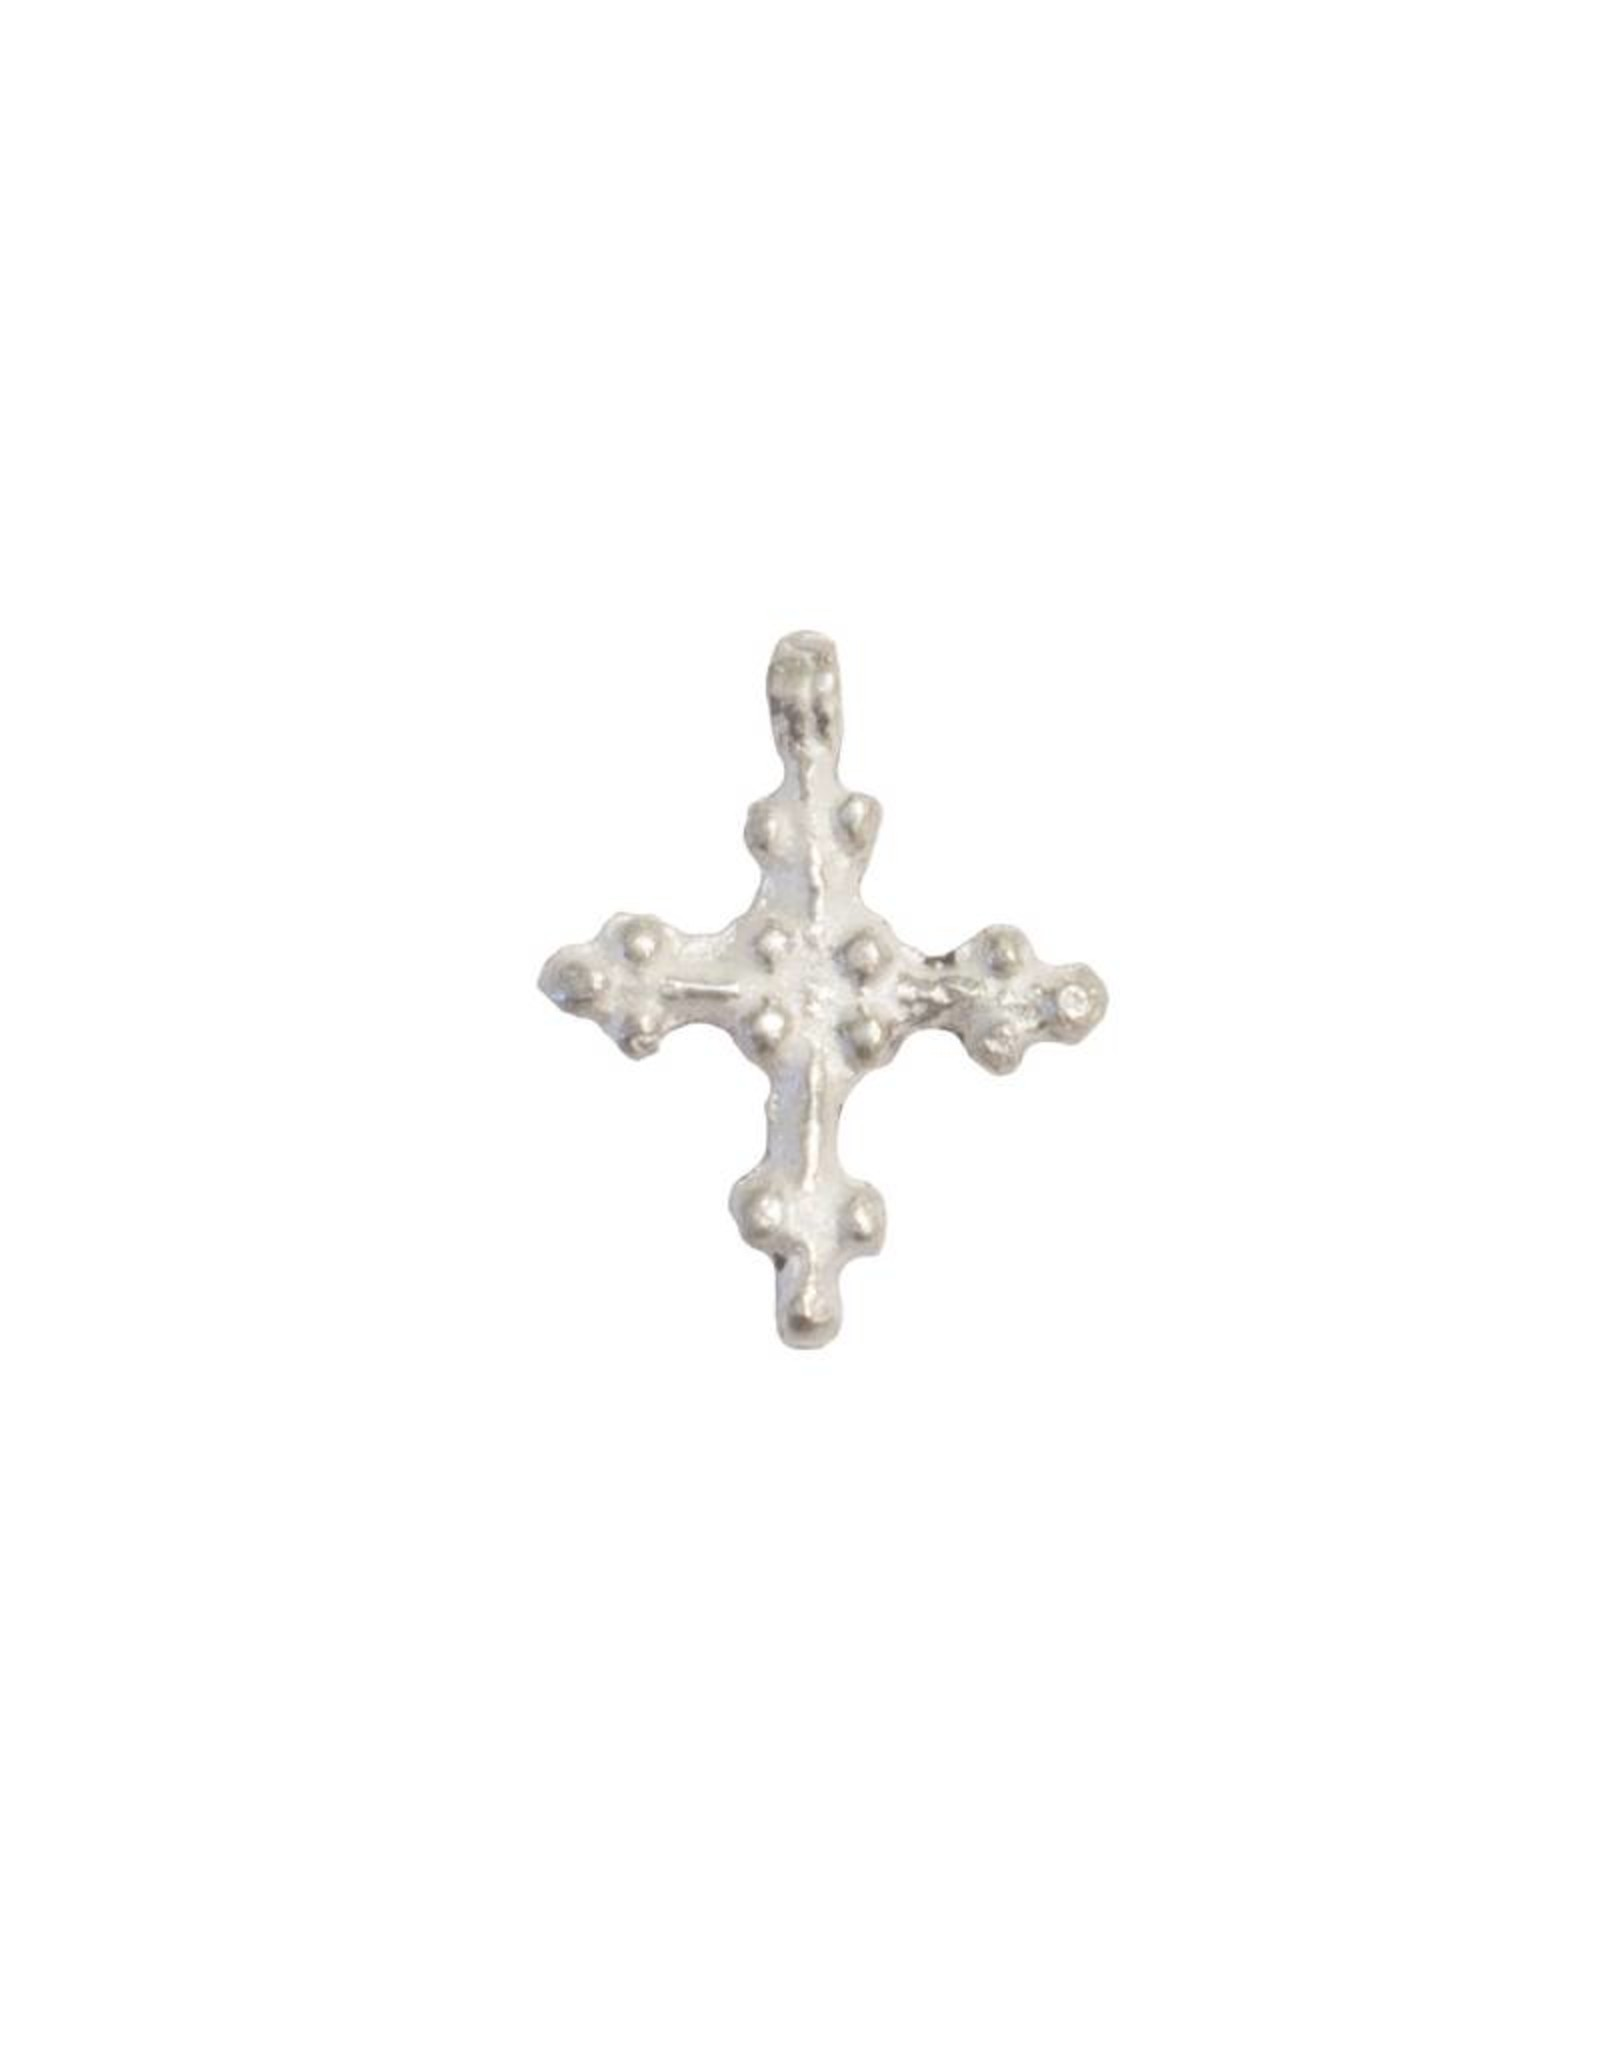 Robin Haley Jewelry Large Nordic Cross Artifact Necklace - Double-Sided